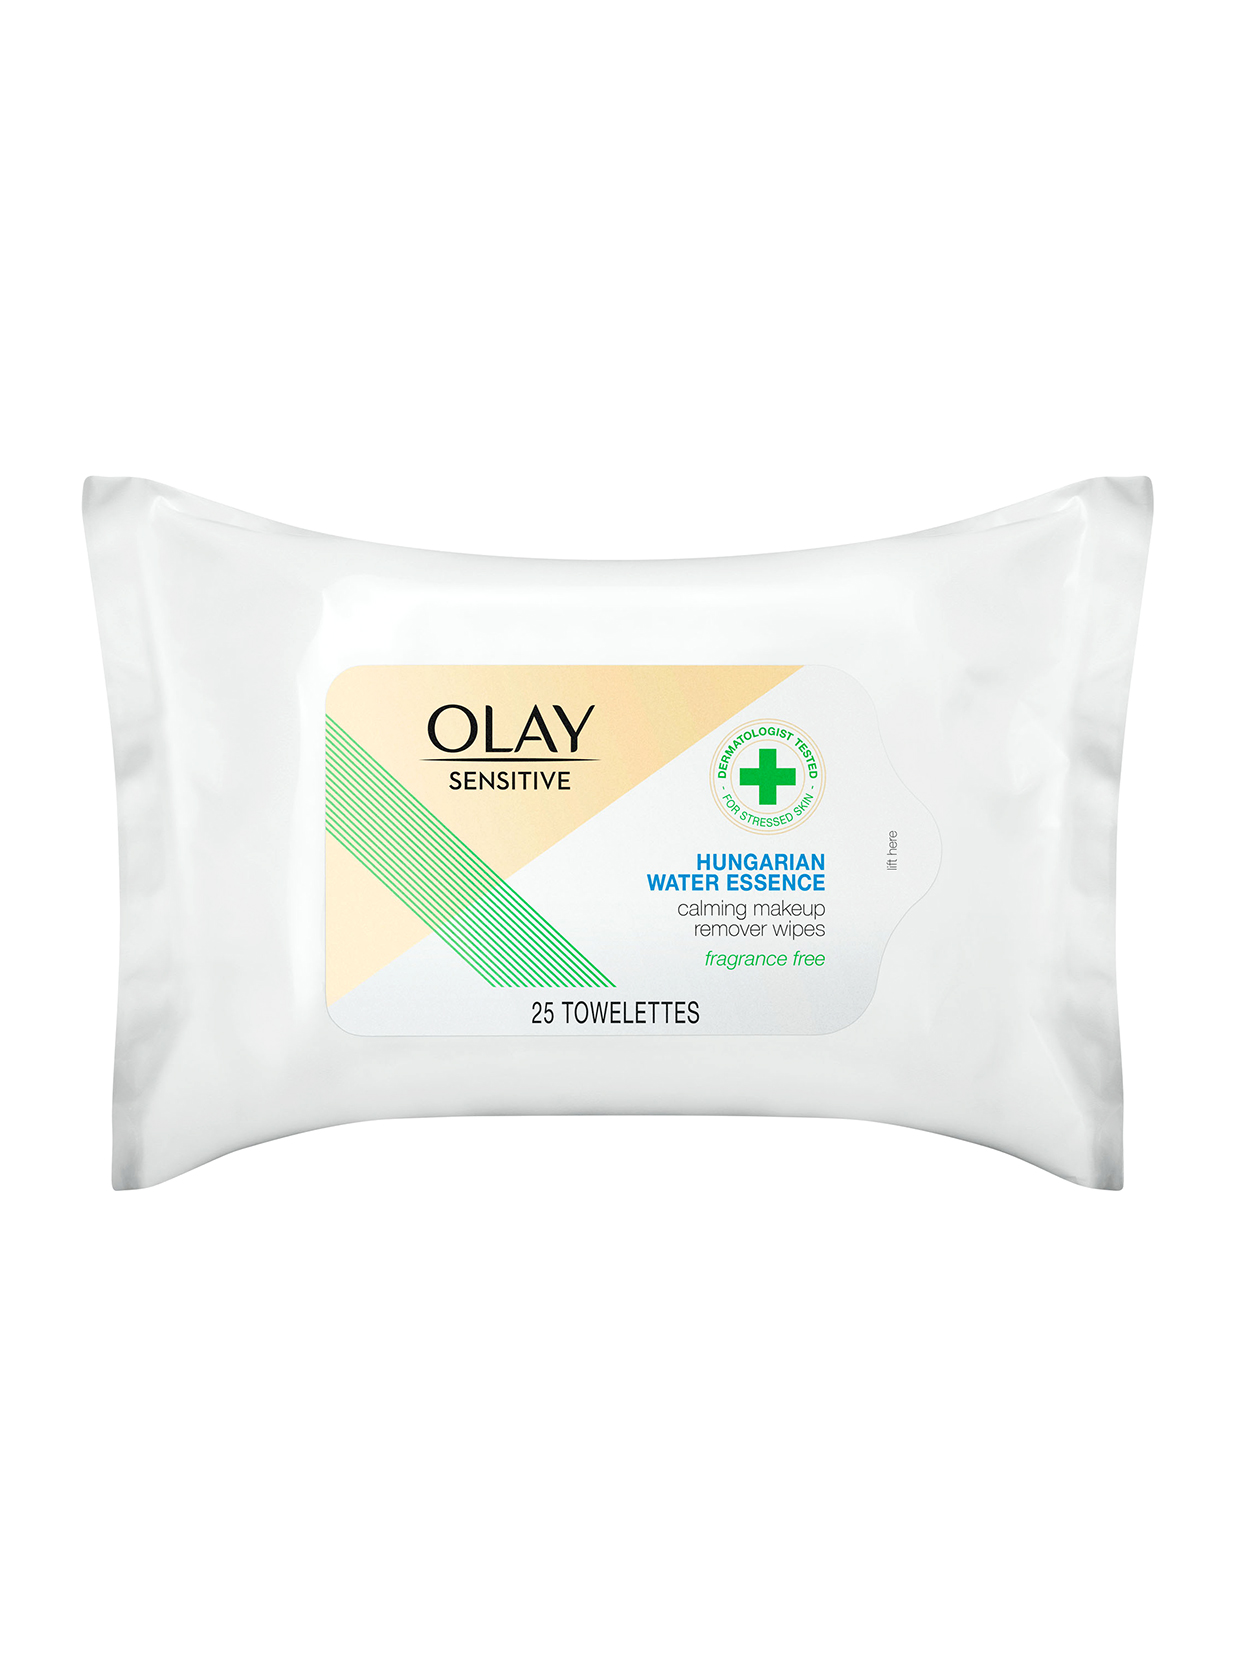 olay calming makeup remover wipes